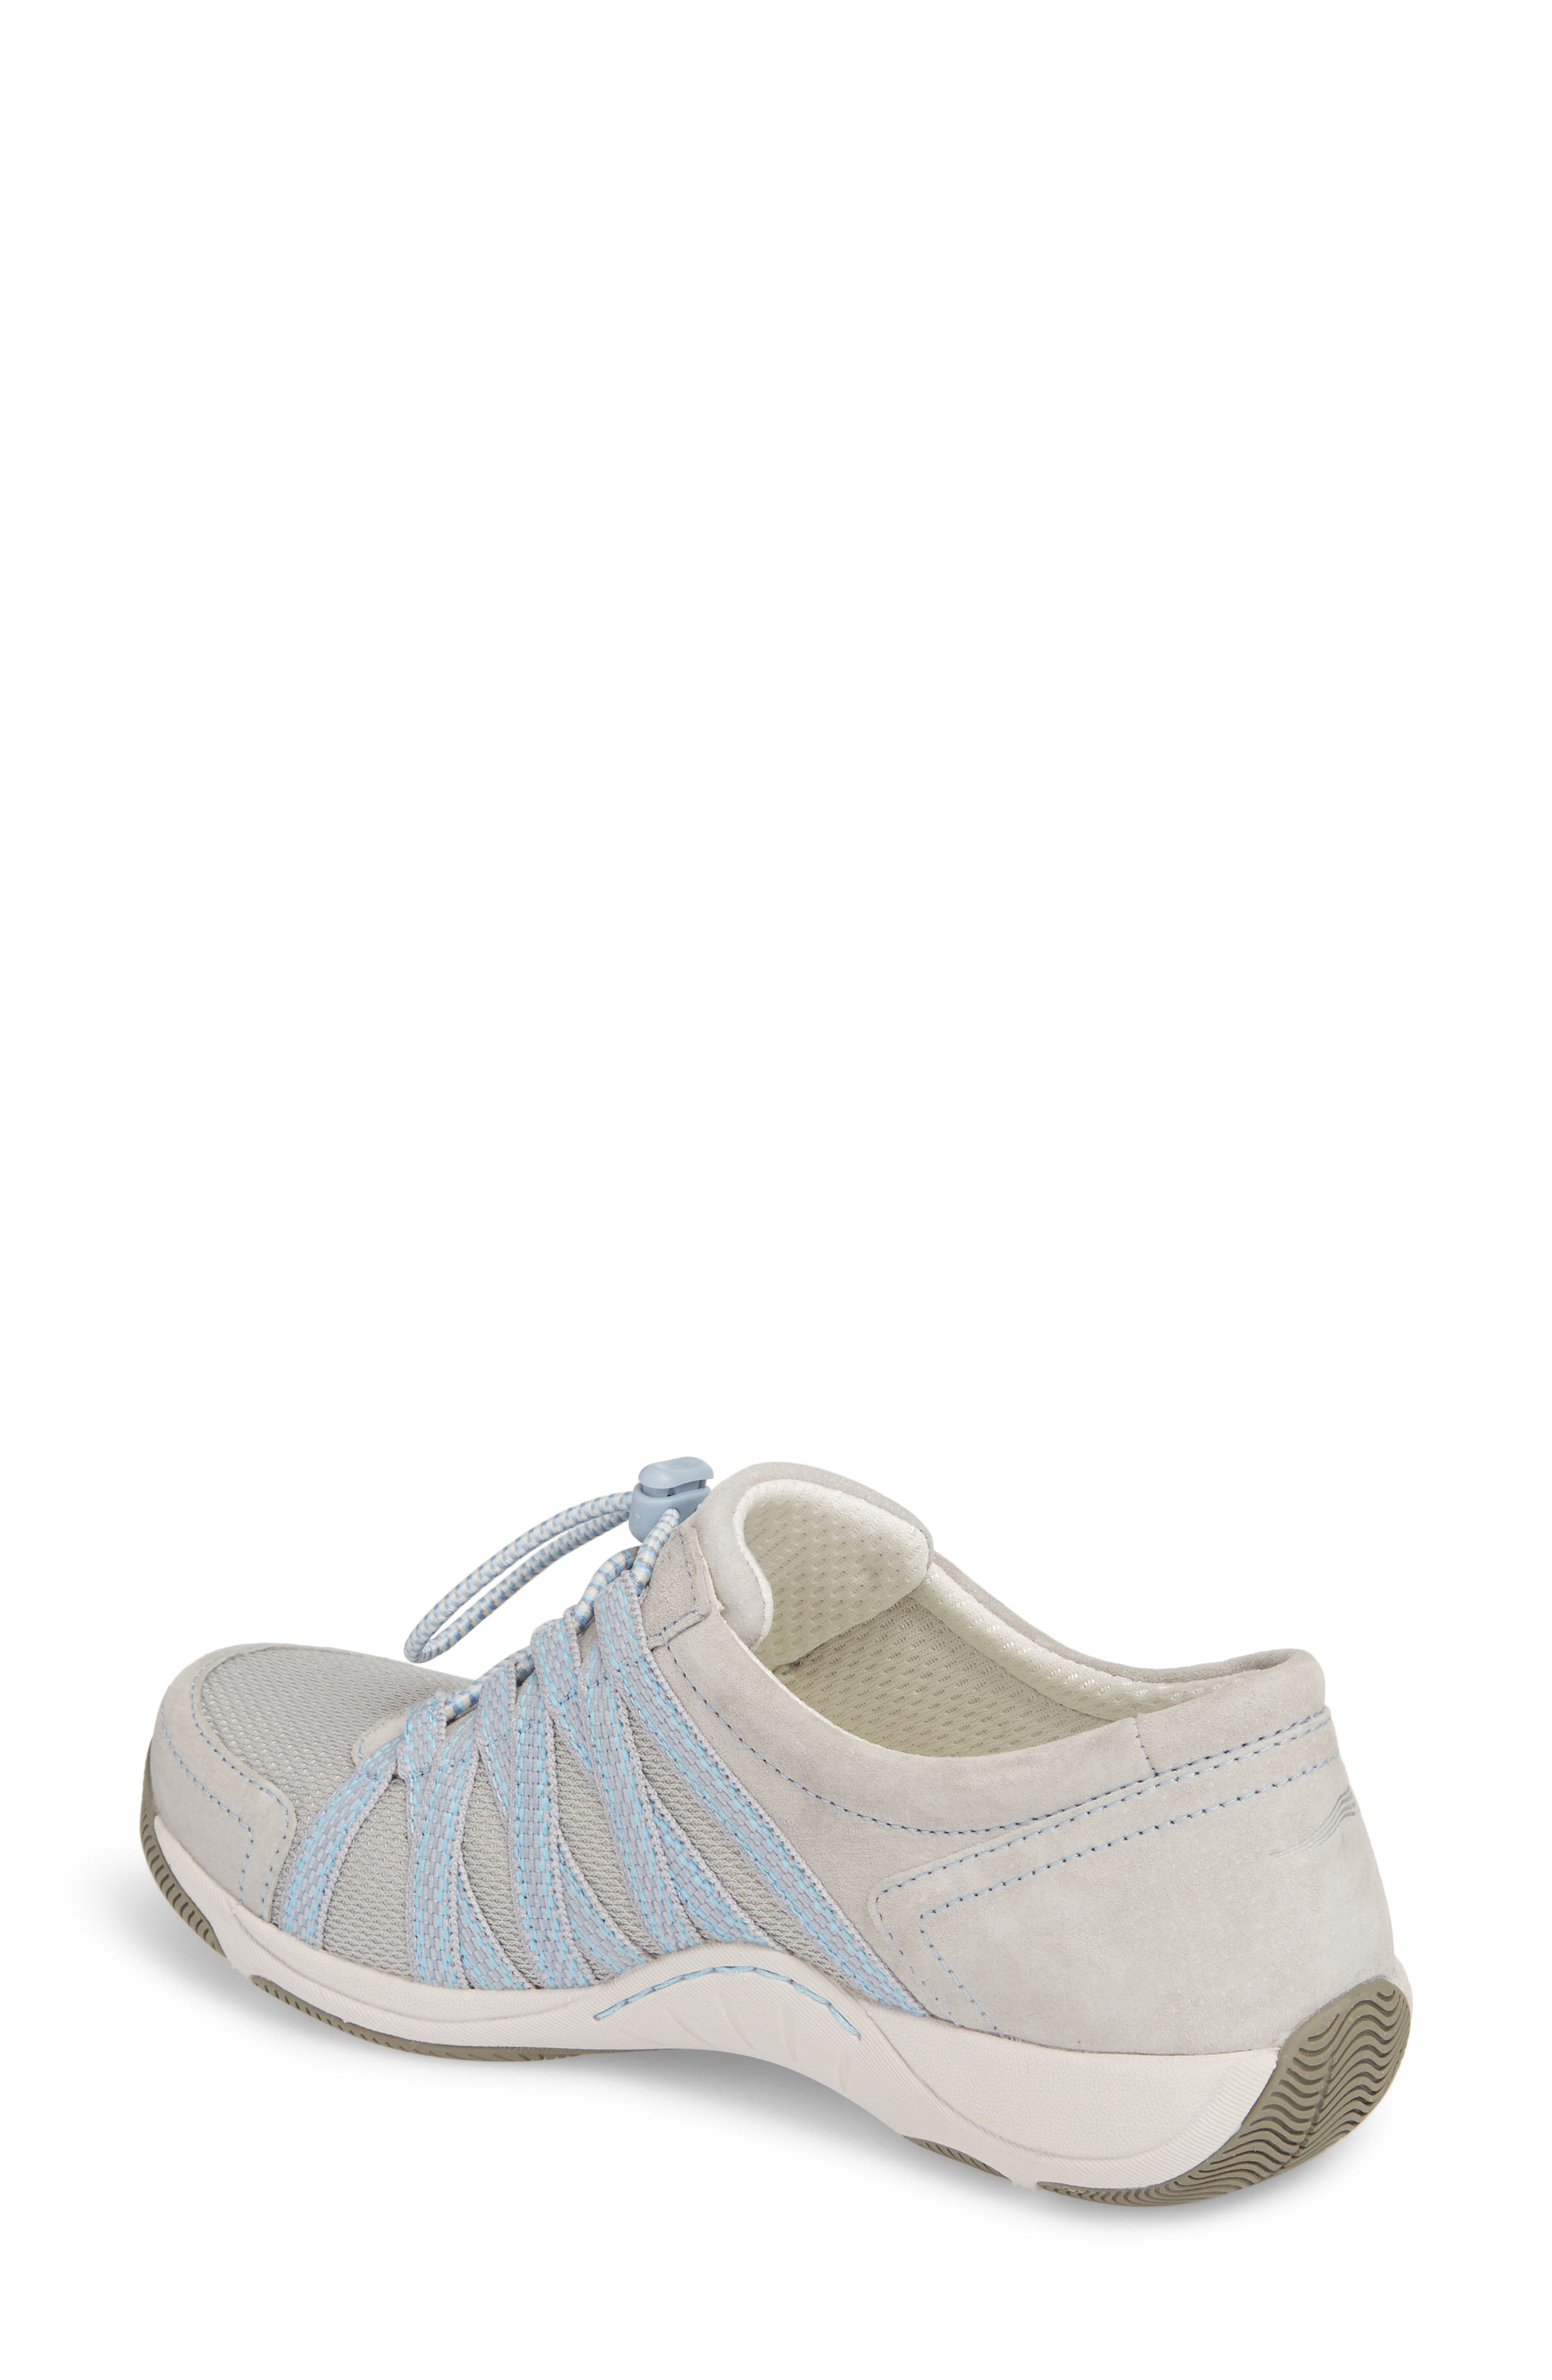 Halifax Collection Honor Sneaker,                             Alternate thumbnail 10, color,